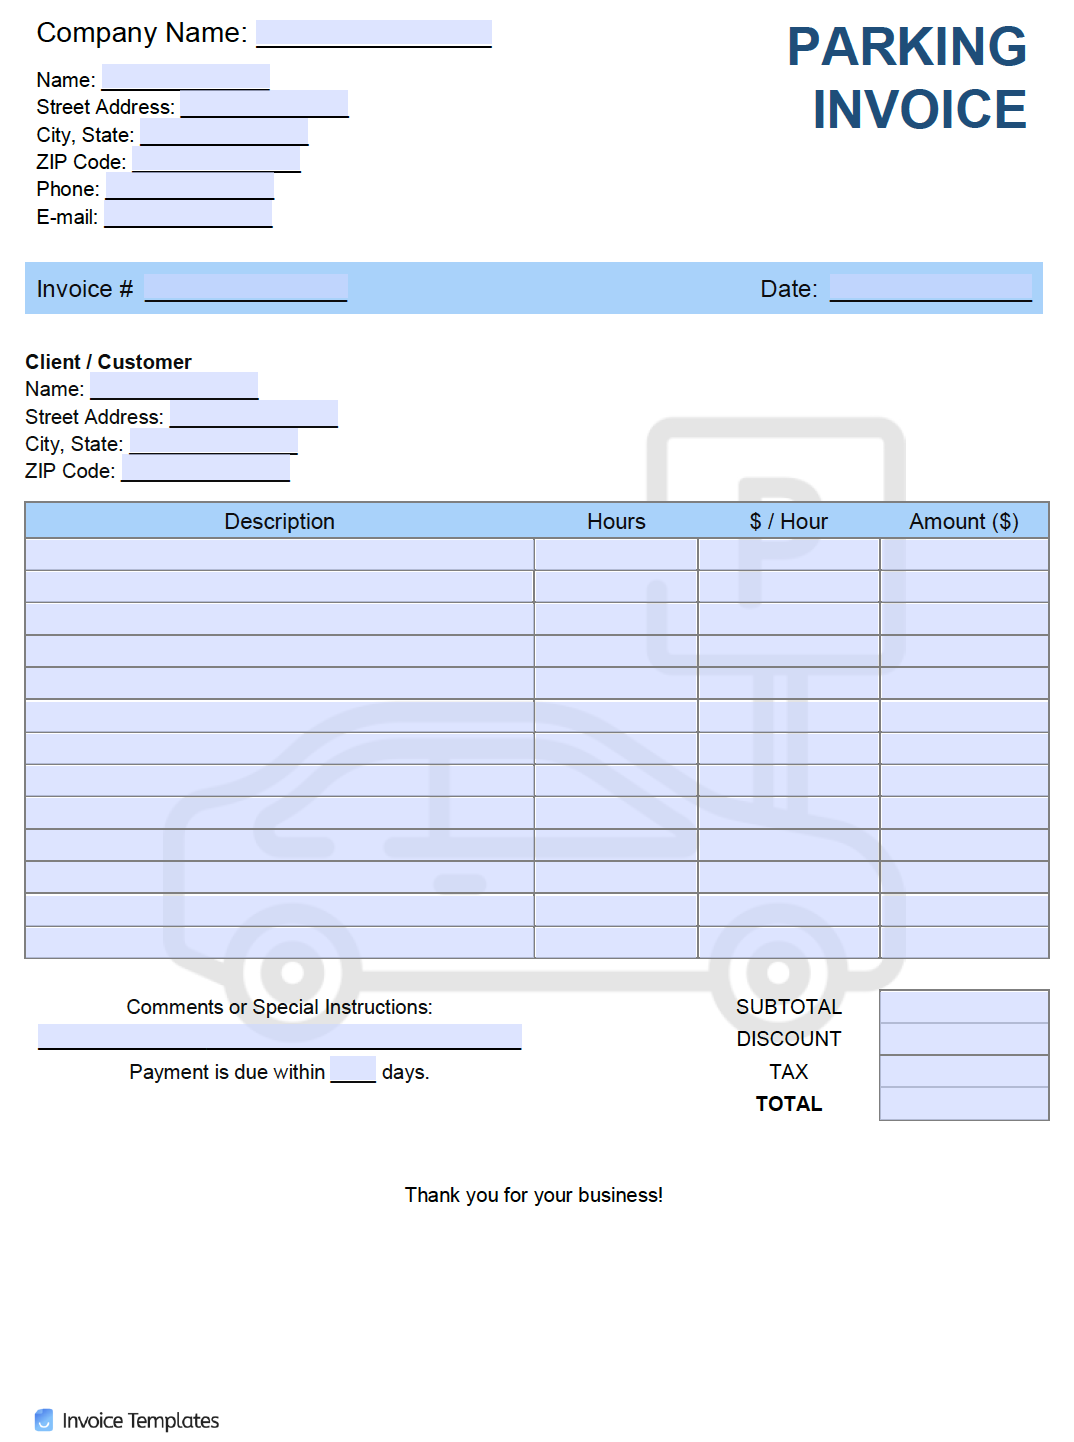 Free Parking Invoice Template Pdf Word Excel